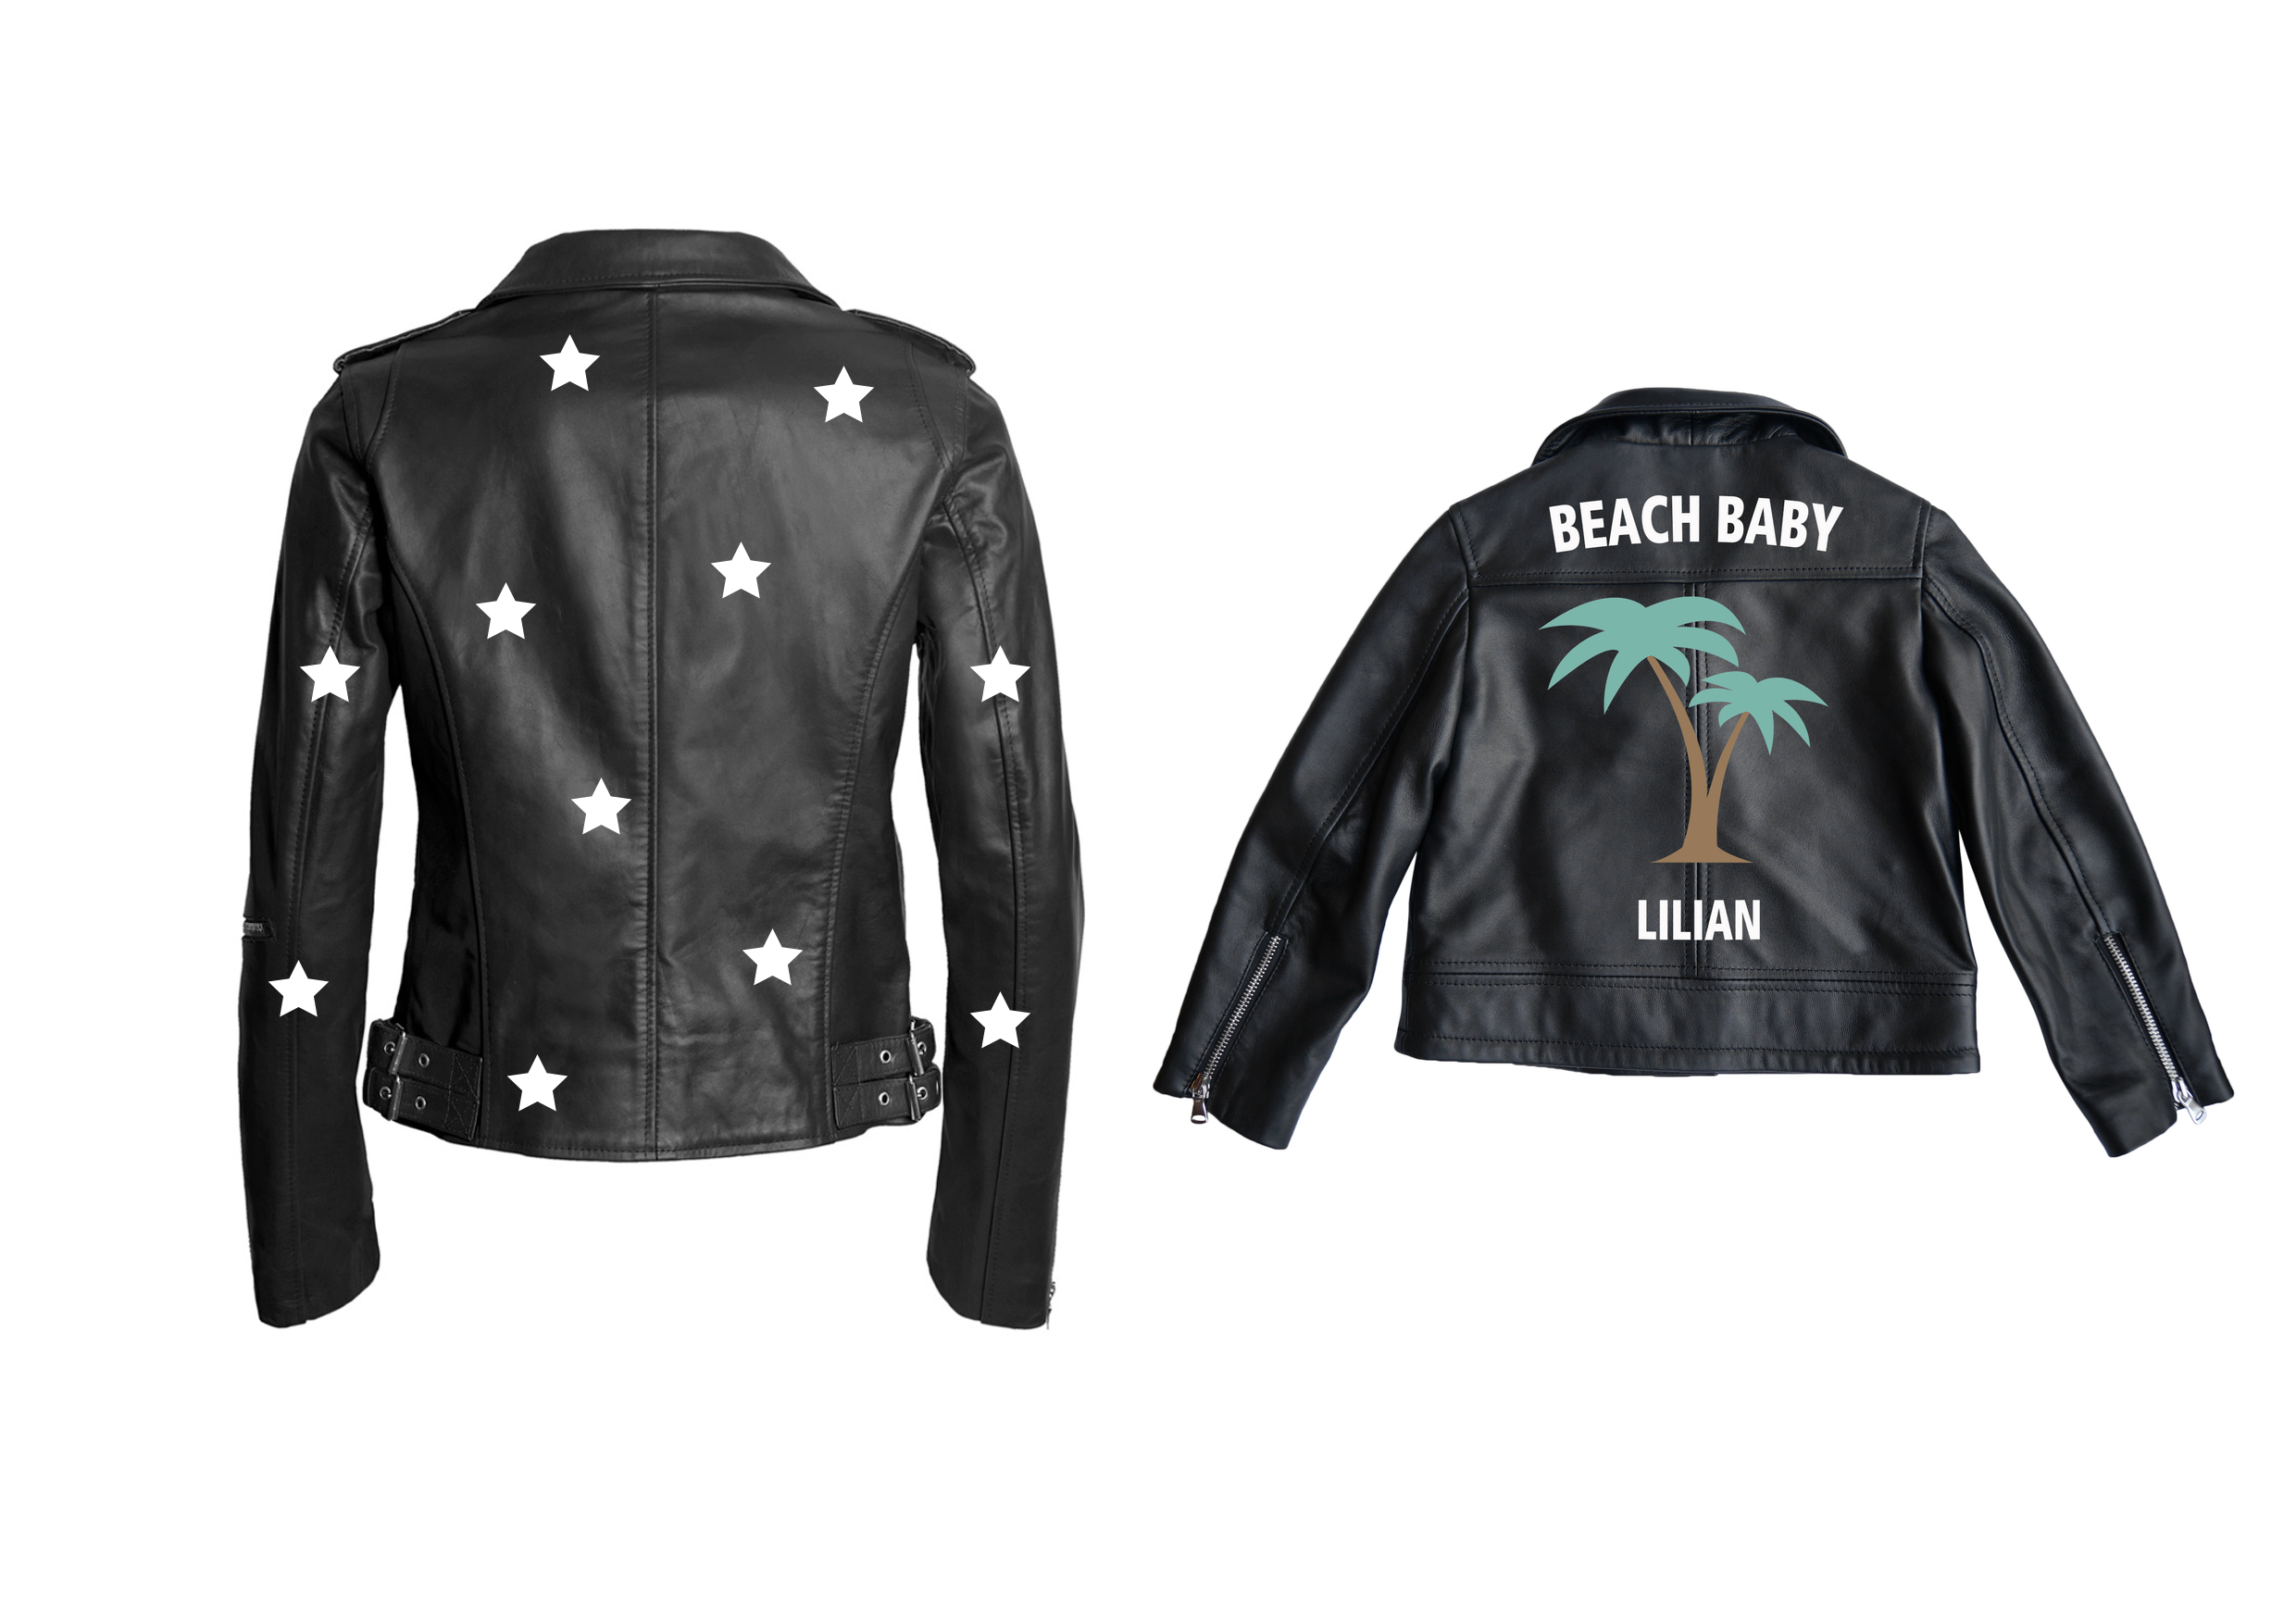 Custom Leather Jacket for Mum & Kids by Jn Llovet on curated-crowd.com